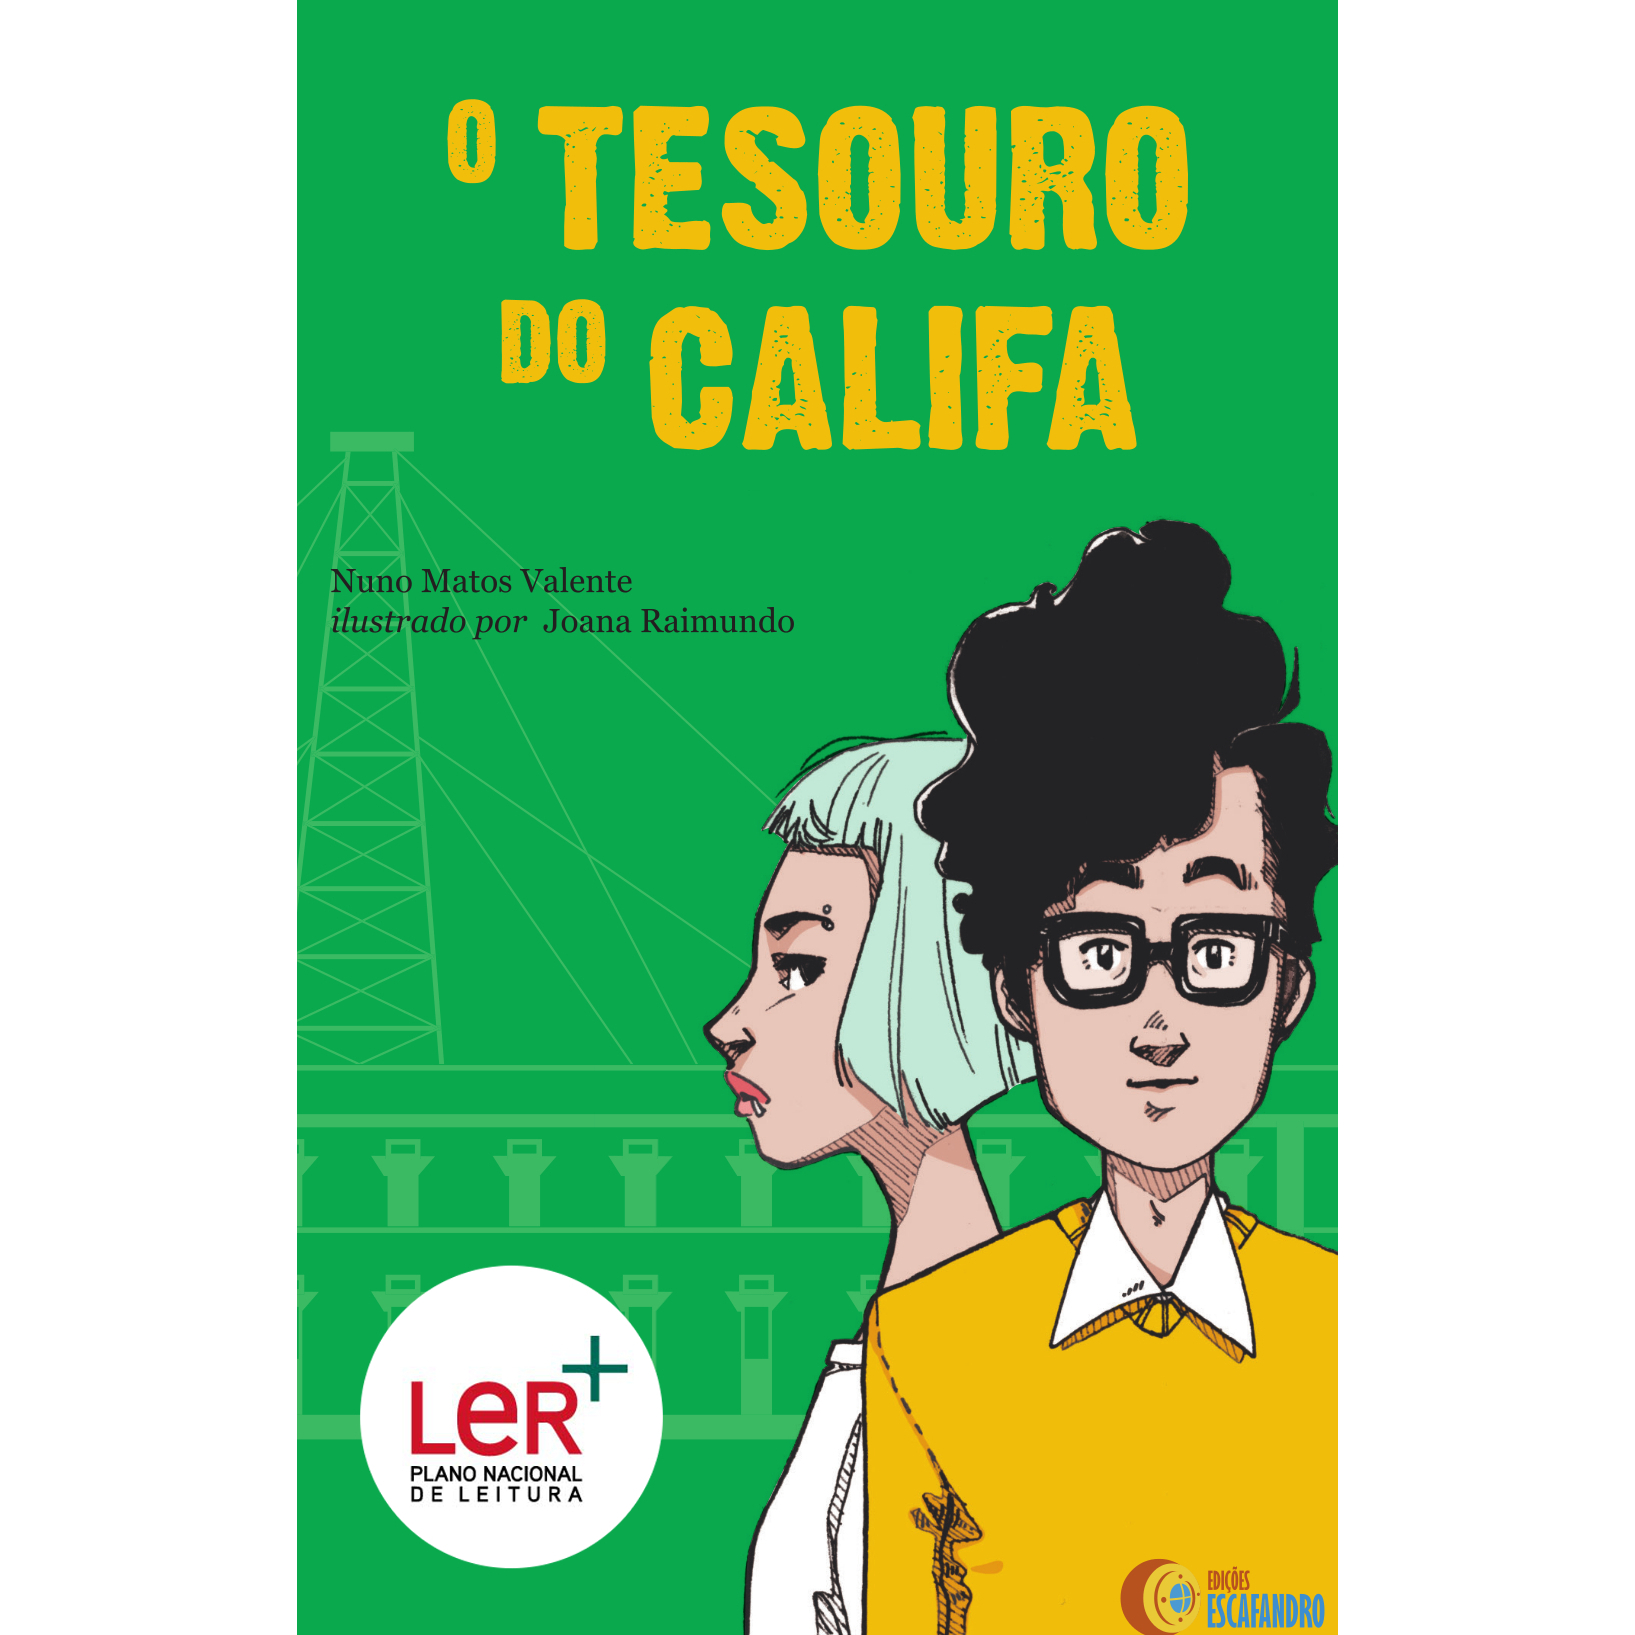 O Tesouro do Califa